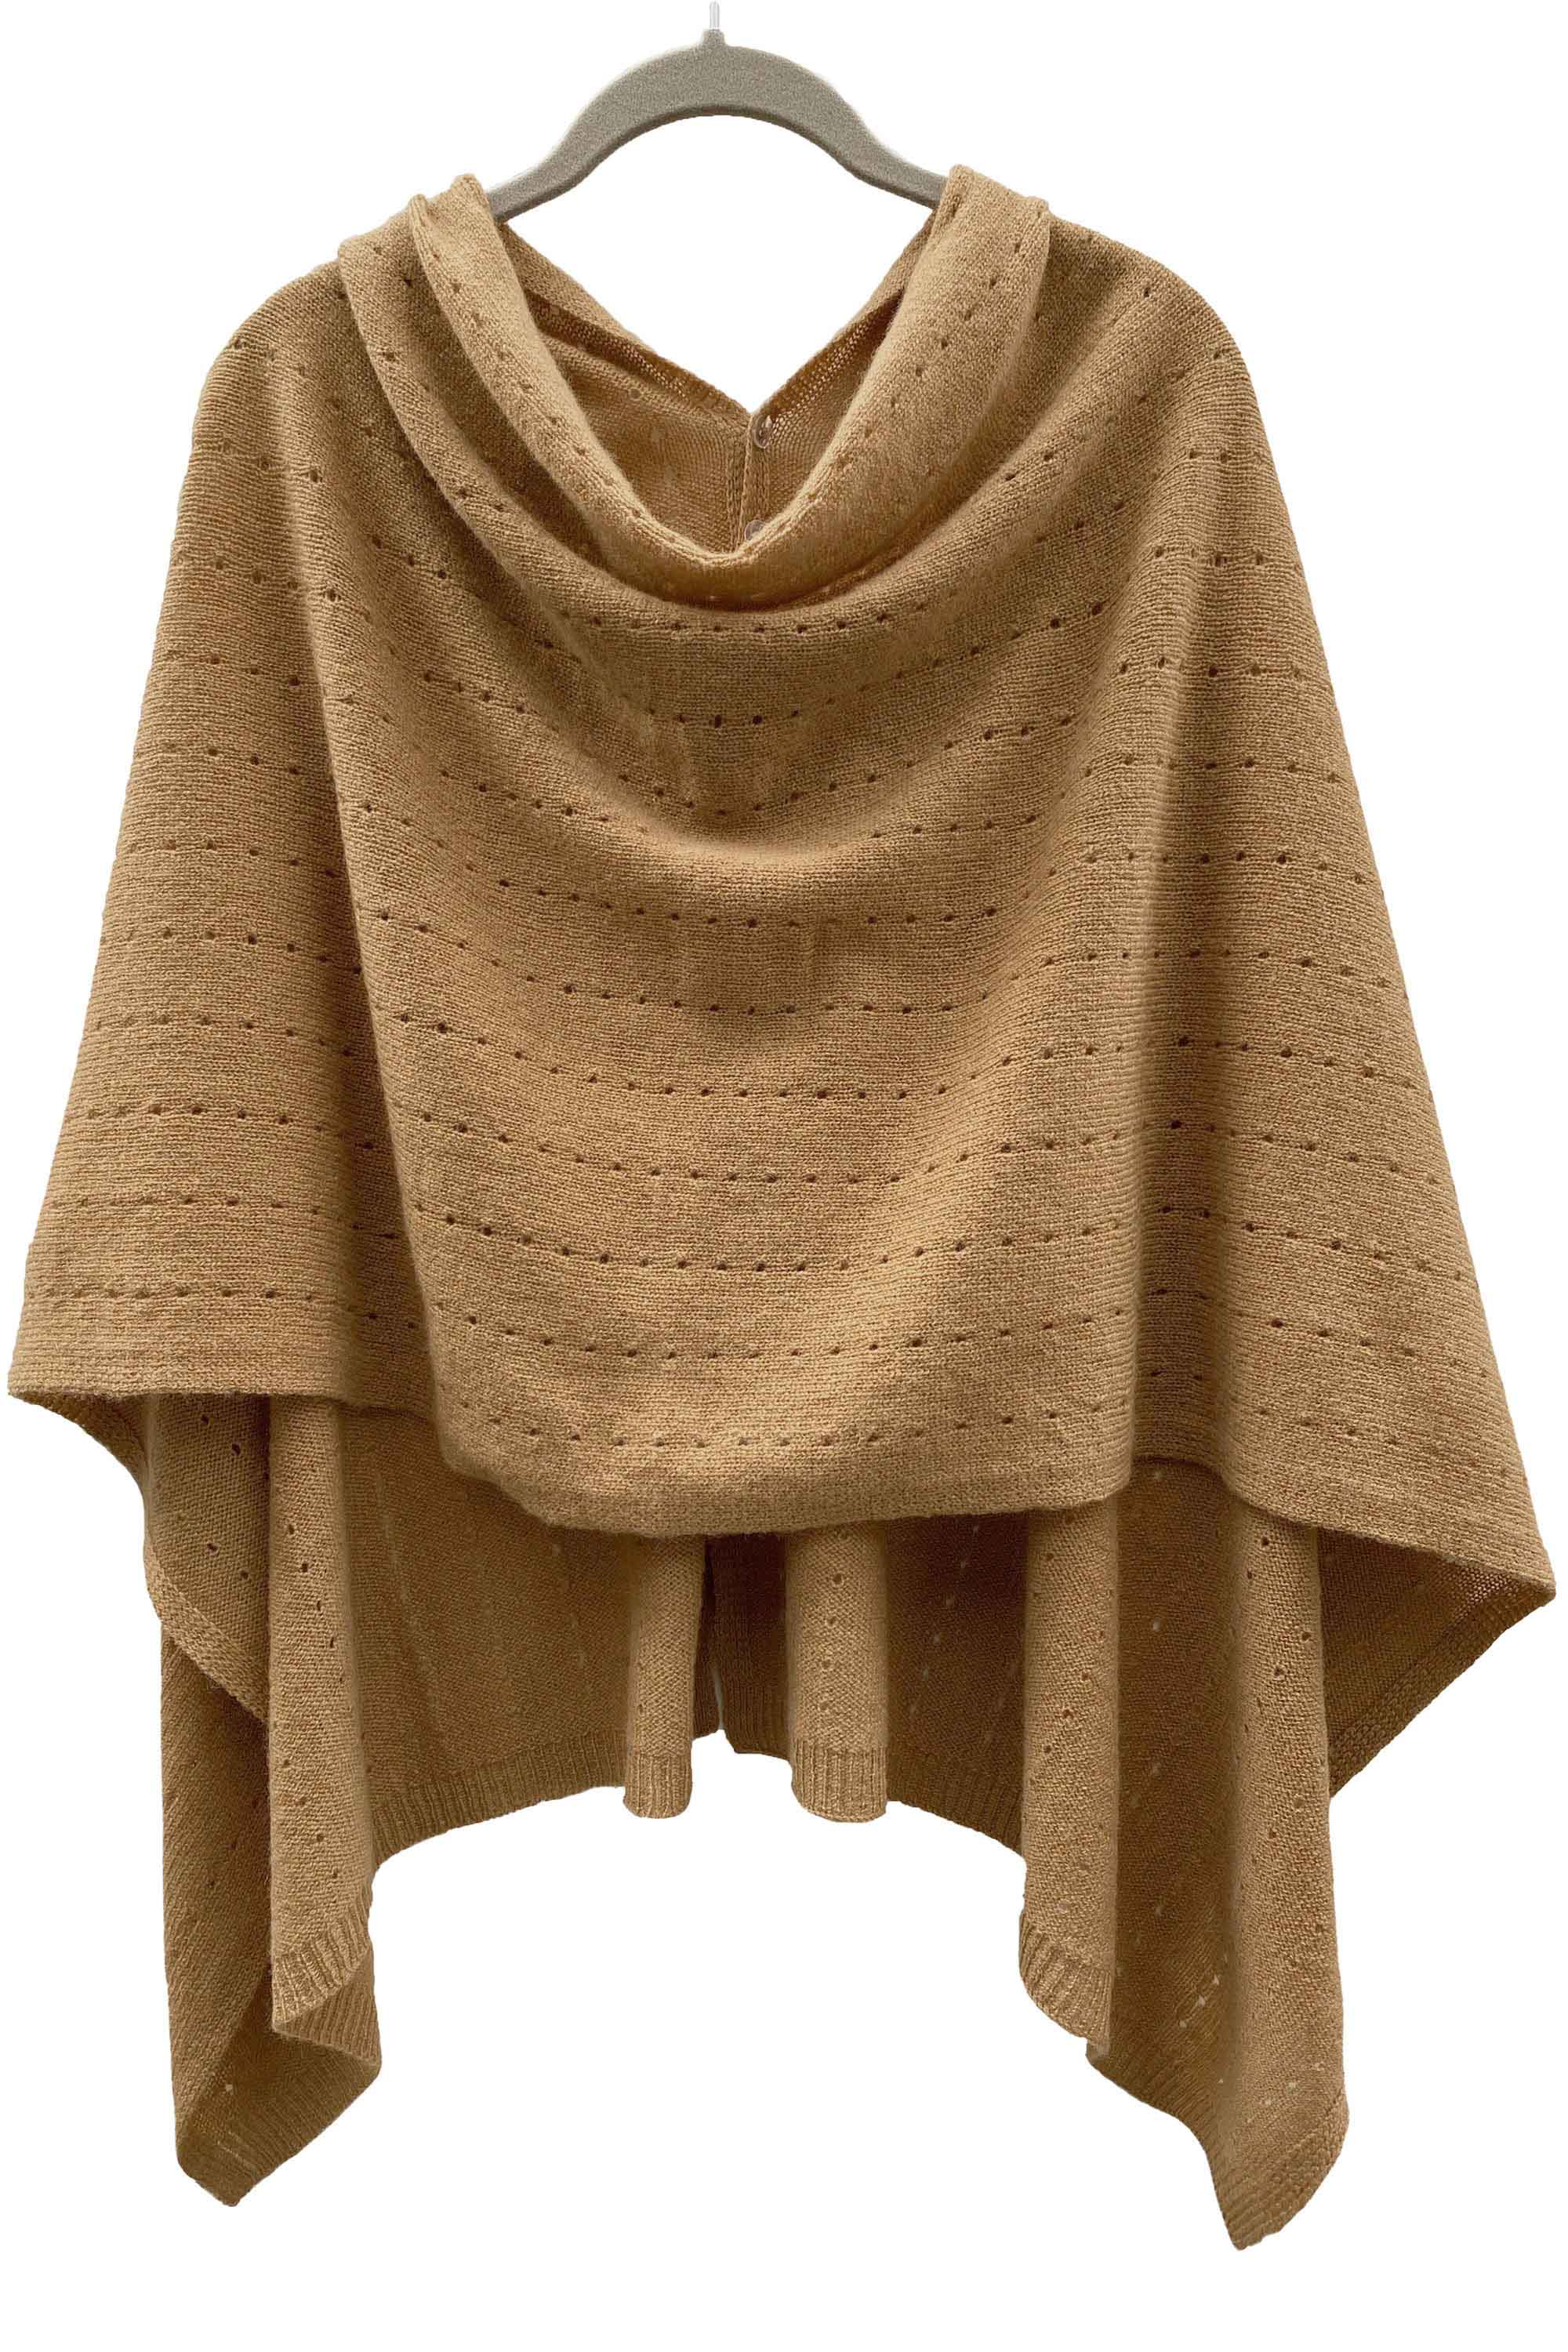 Camel Cashmere Poncho UK beige Women Wrap Cape Shawls Scarf shawl cardigan light weight multiwear poncho ladies small button poncho sweater damen sale | SEMON Cashmere